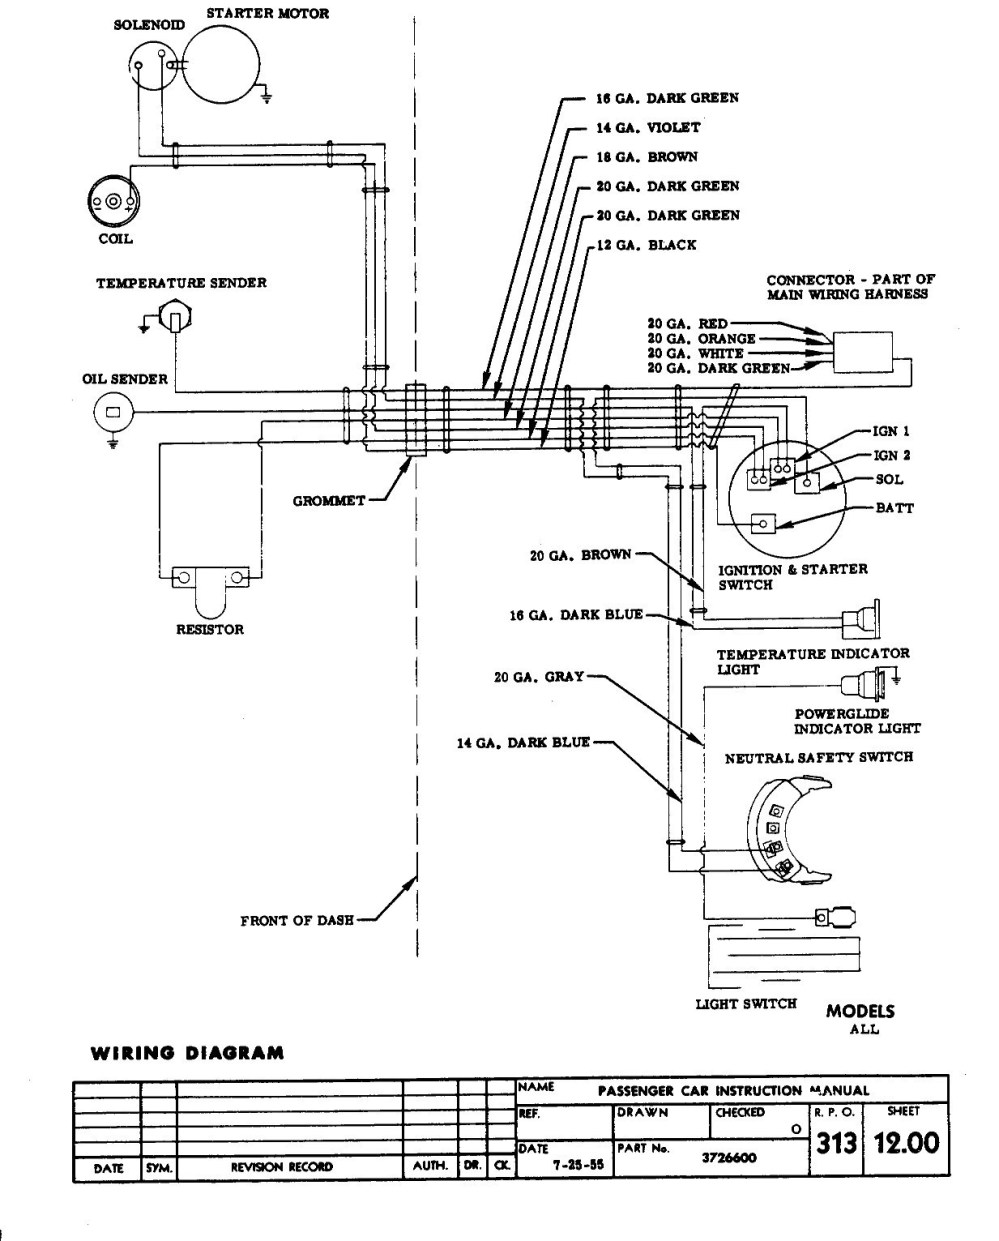 medium resolution of 1979 chevy truck neutral safety switch wiring wiring diagram newwiring diagram for neutral safety switch gm